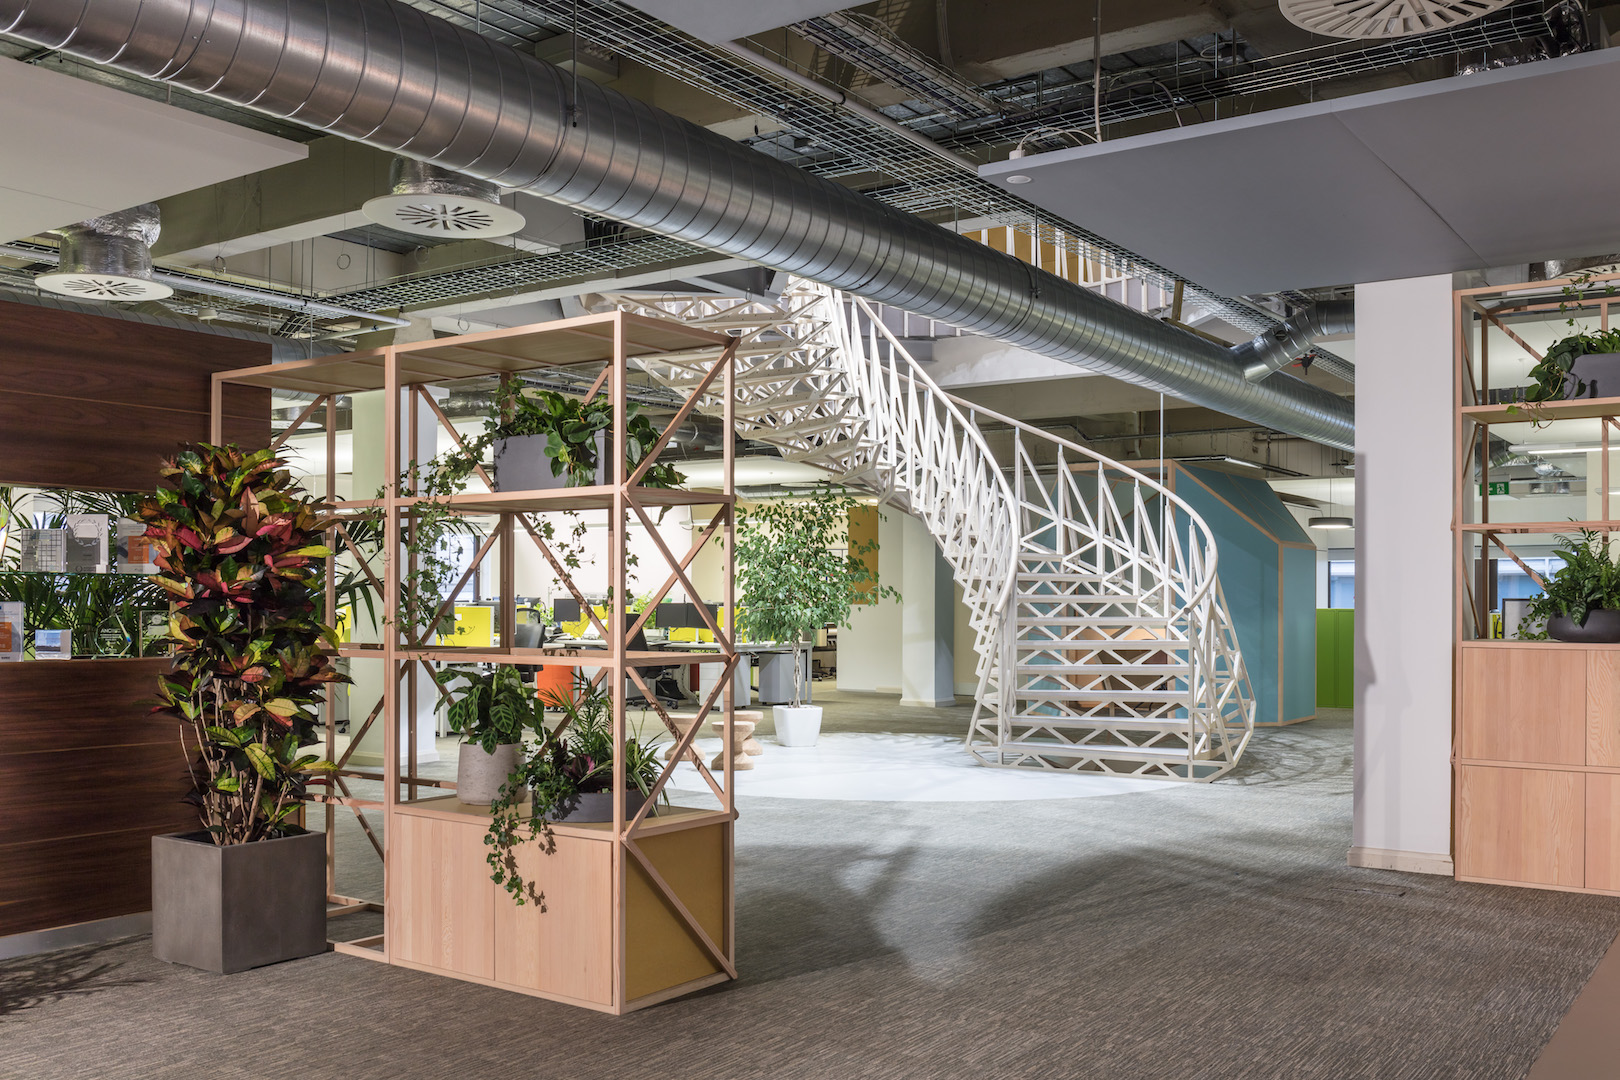 Well Design: There's More To Biophilia Than Just Plants